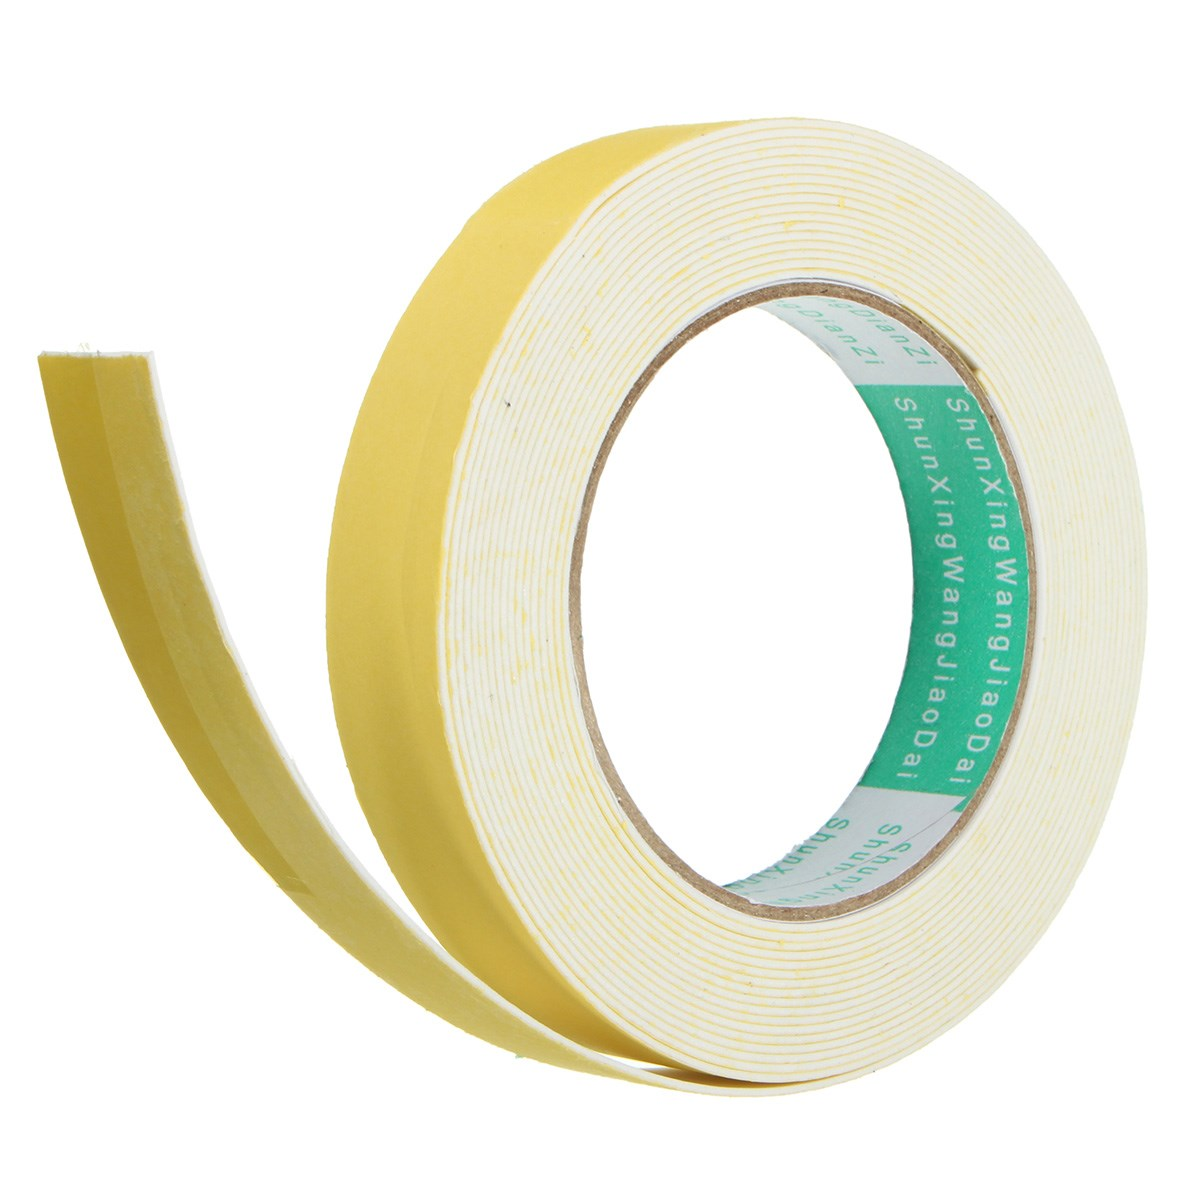 Hot Sale 5M Roll 22MM White Adhesive Seal Strip Bath Shower Floor Sink Sealant Tape EVA Quick clean easy to install<br><br>Aliexpress